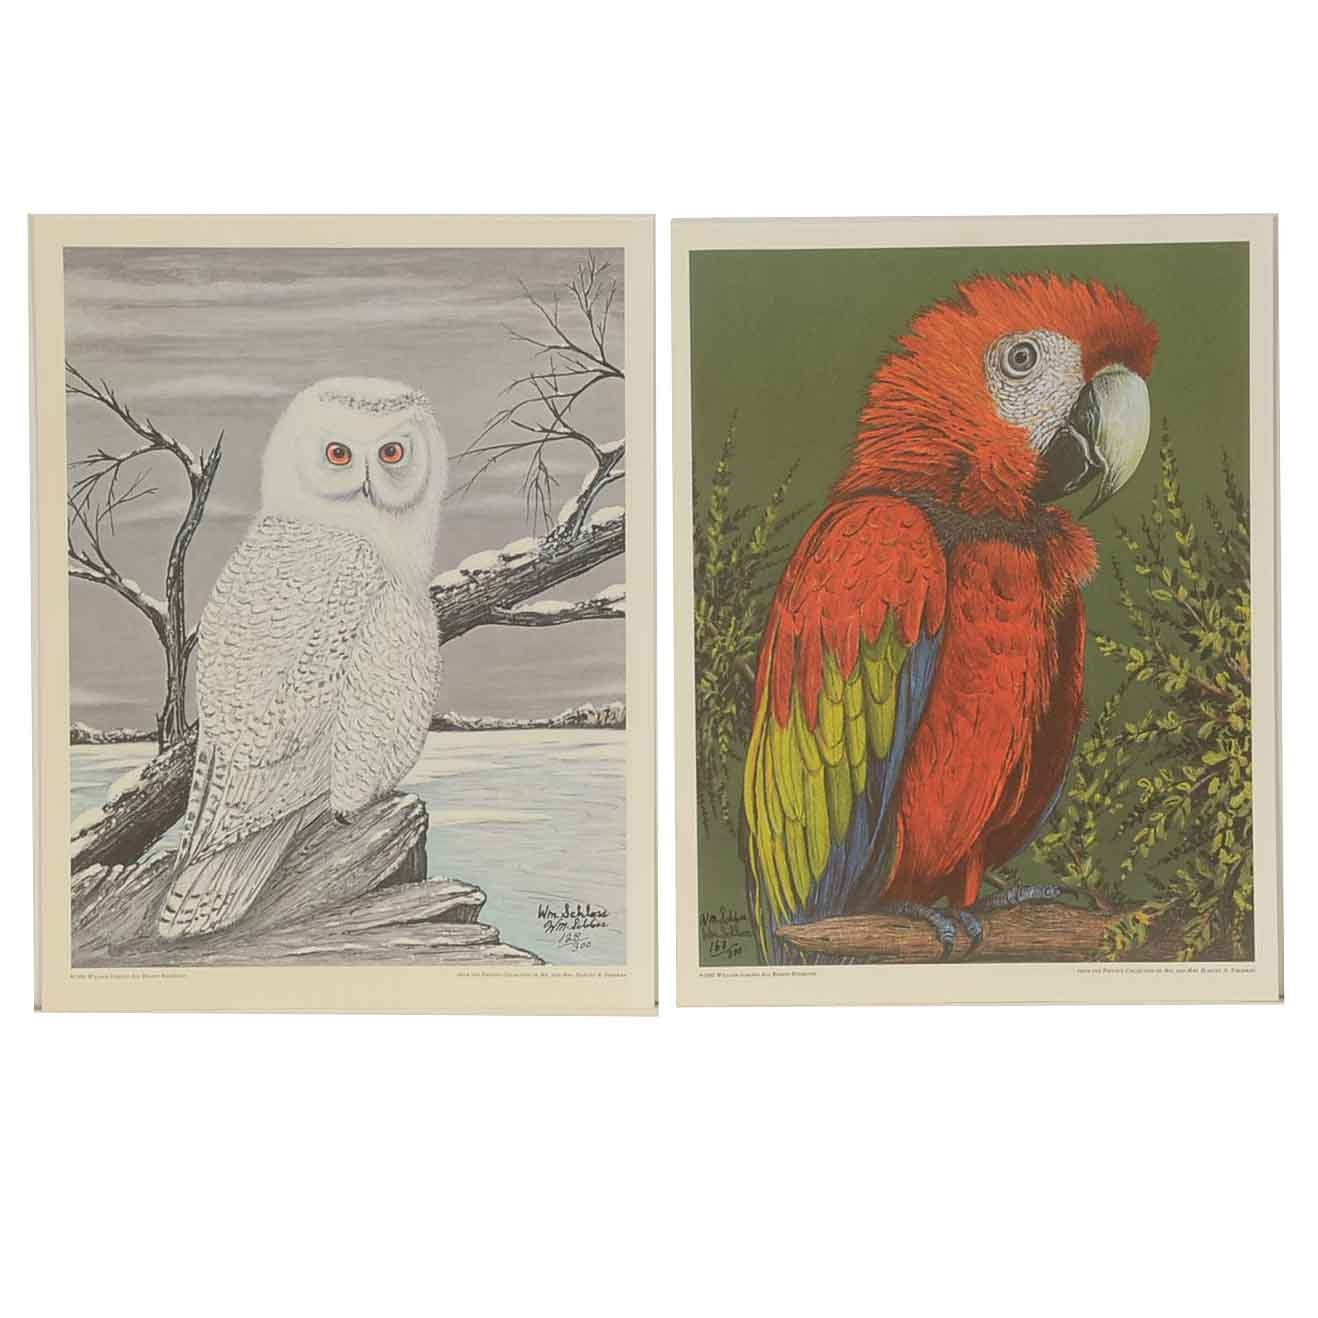 Pair of William Schloss Signed Limited Edition Offset Lithographs of Birds